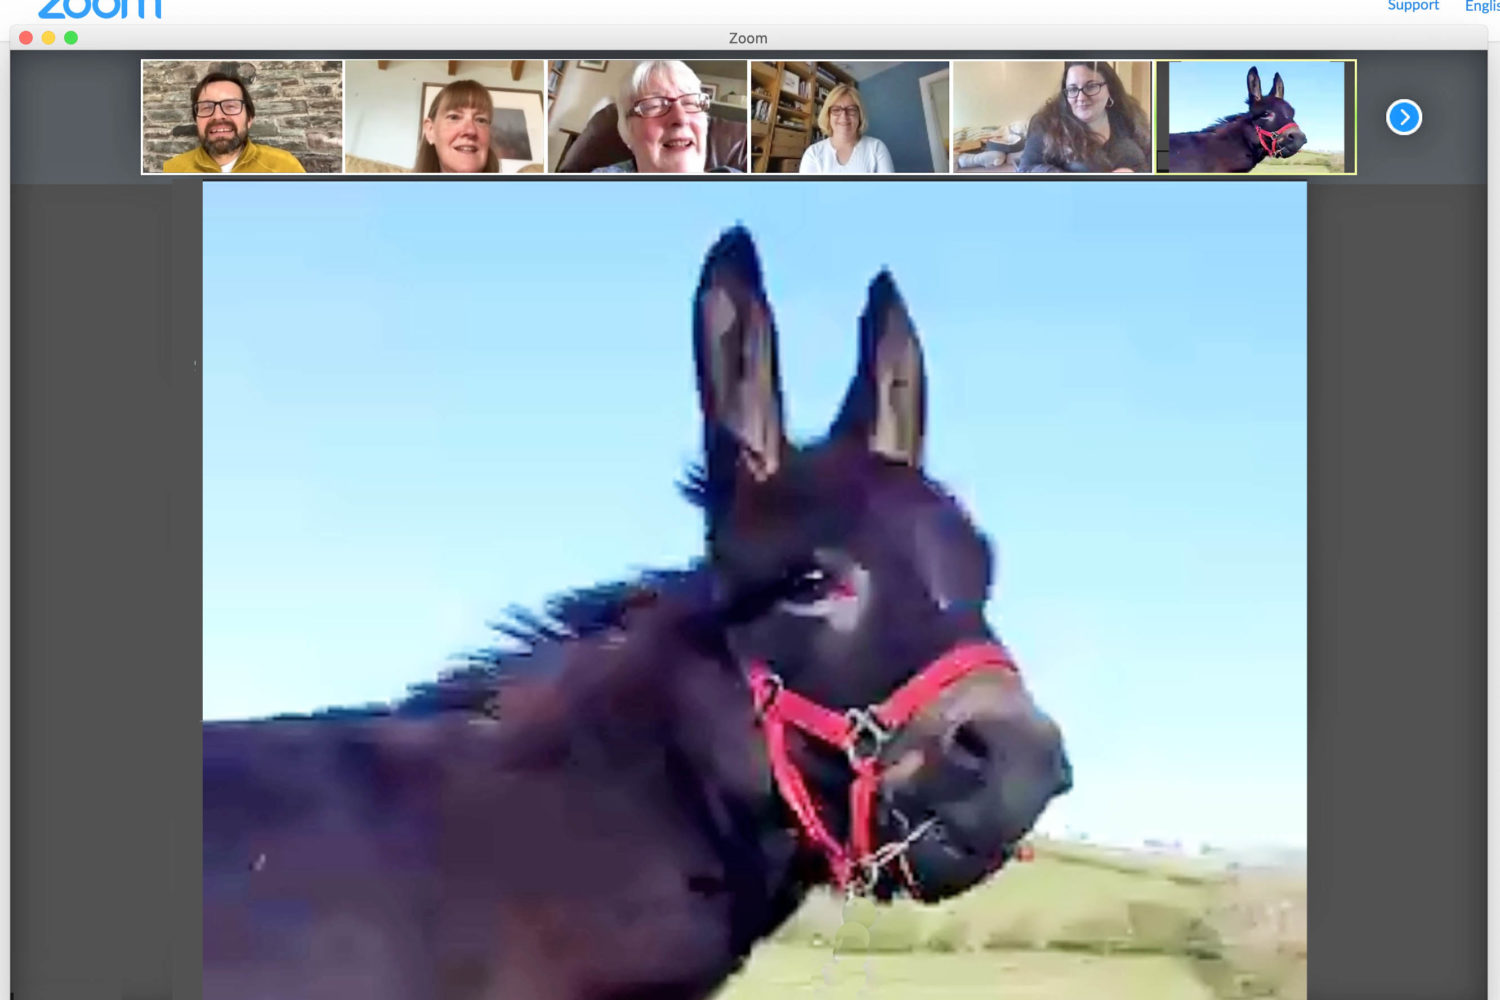 raise funds to treat the NHS with a virtual donkey appearance